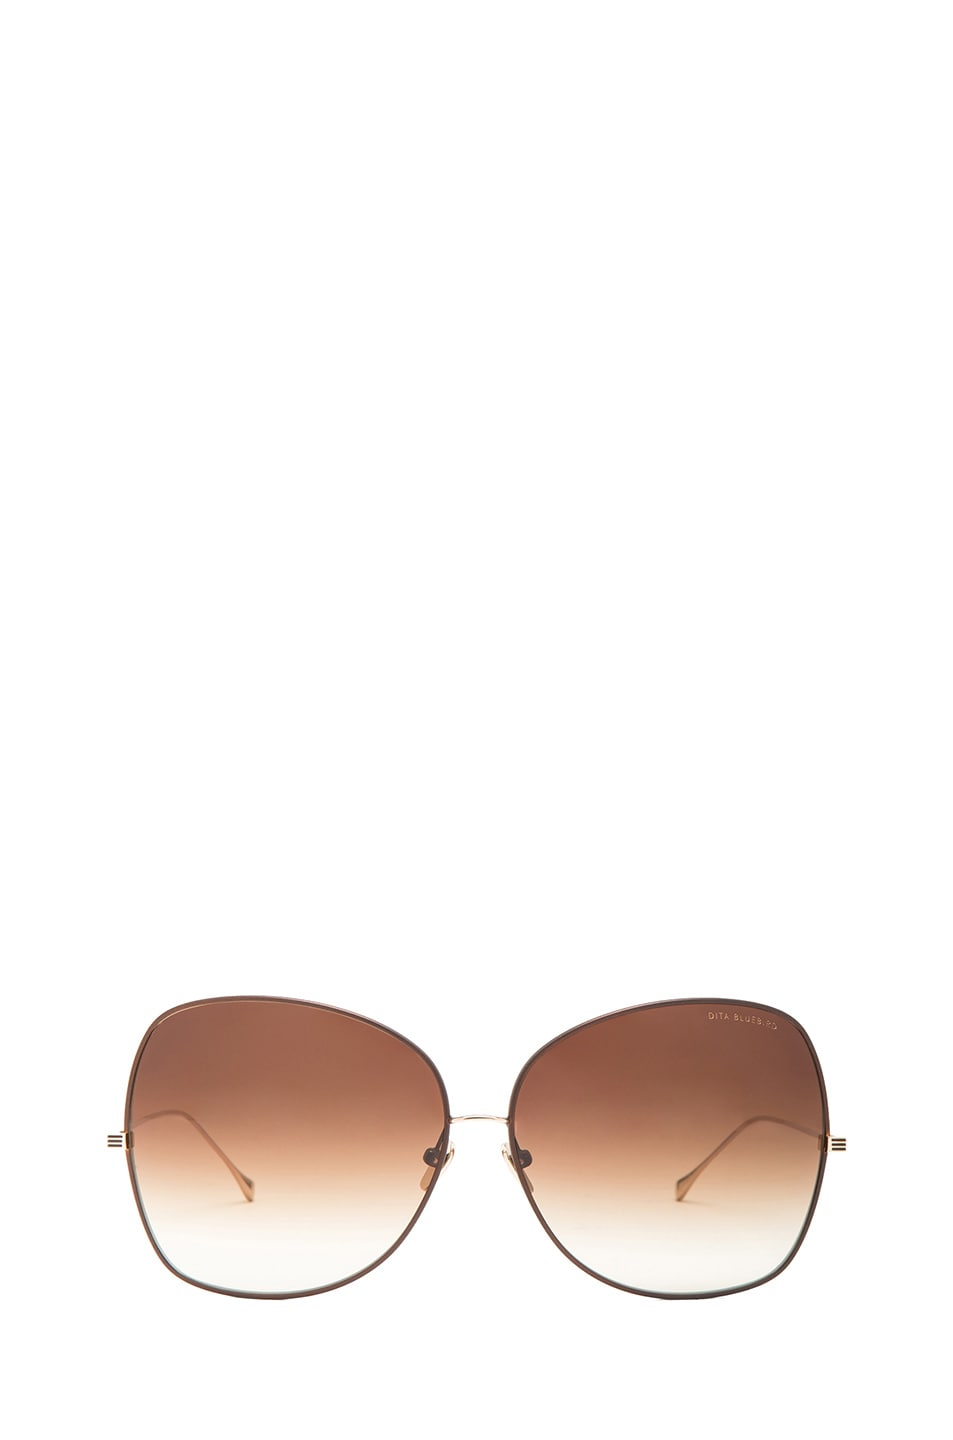 19e415fef9c5 Image 1 of Dita Bluebird Sunglasses in Brown   Champagne